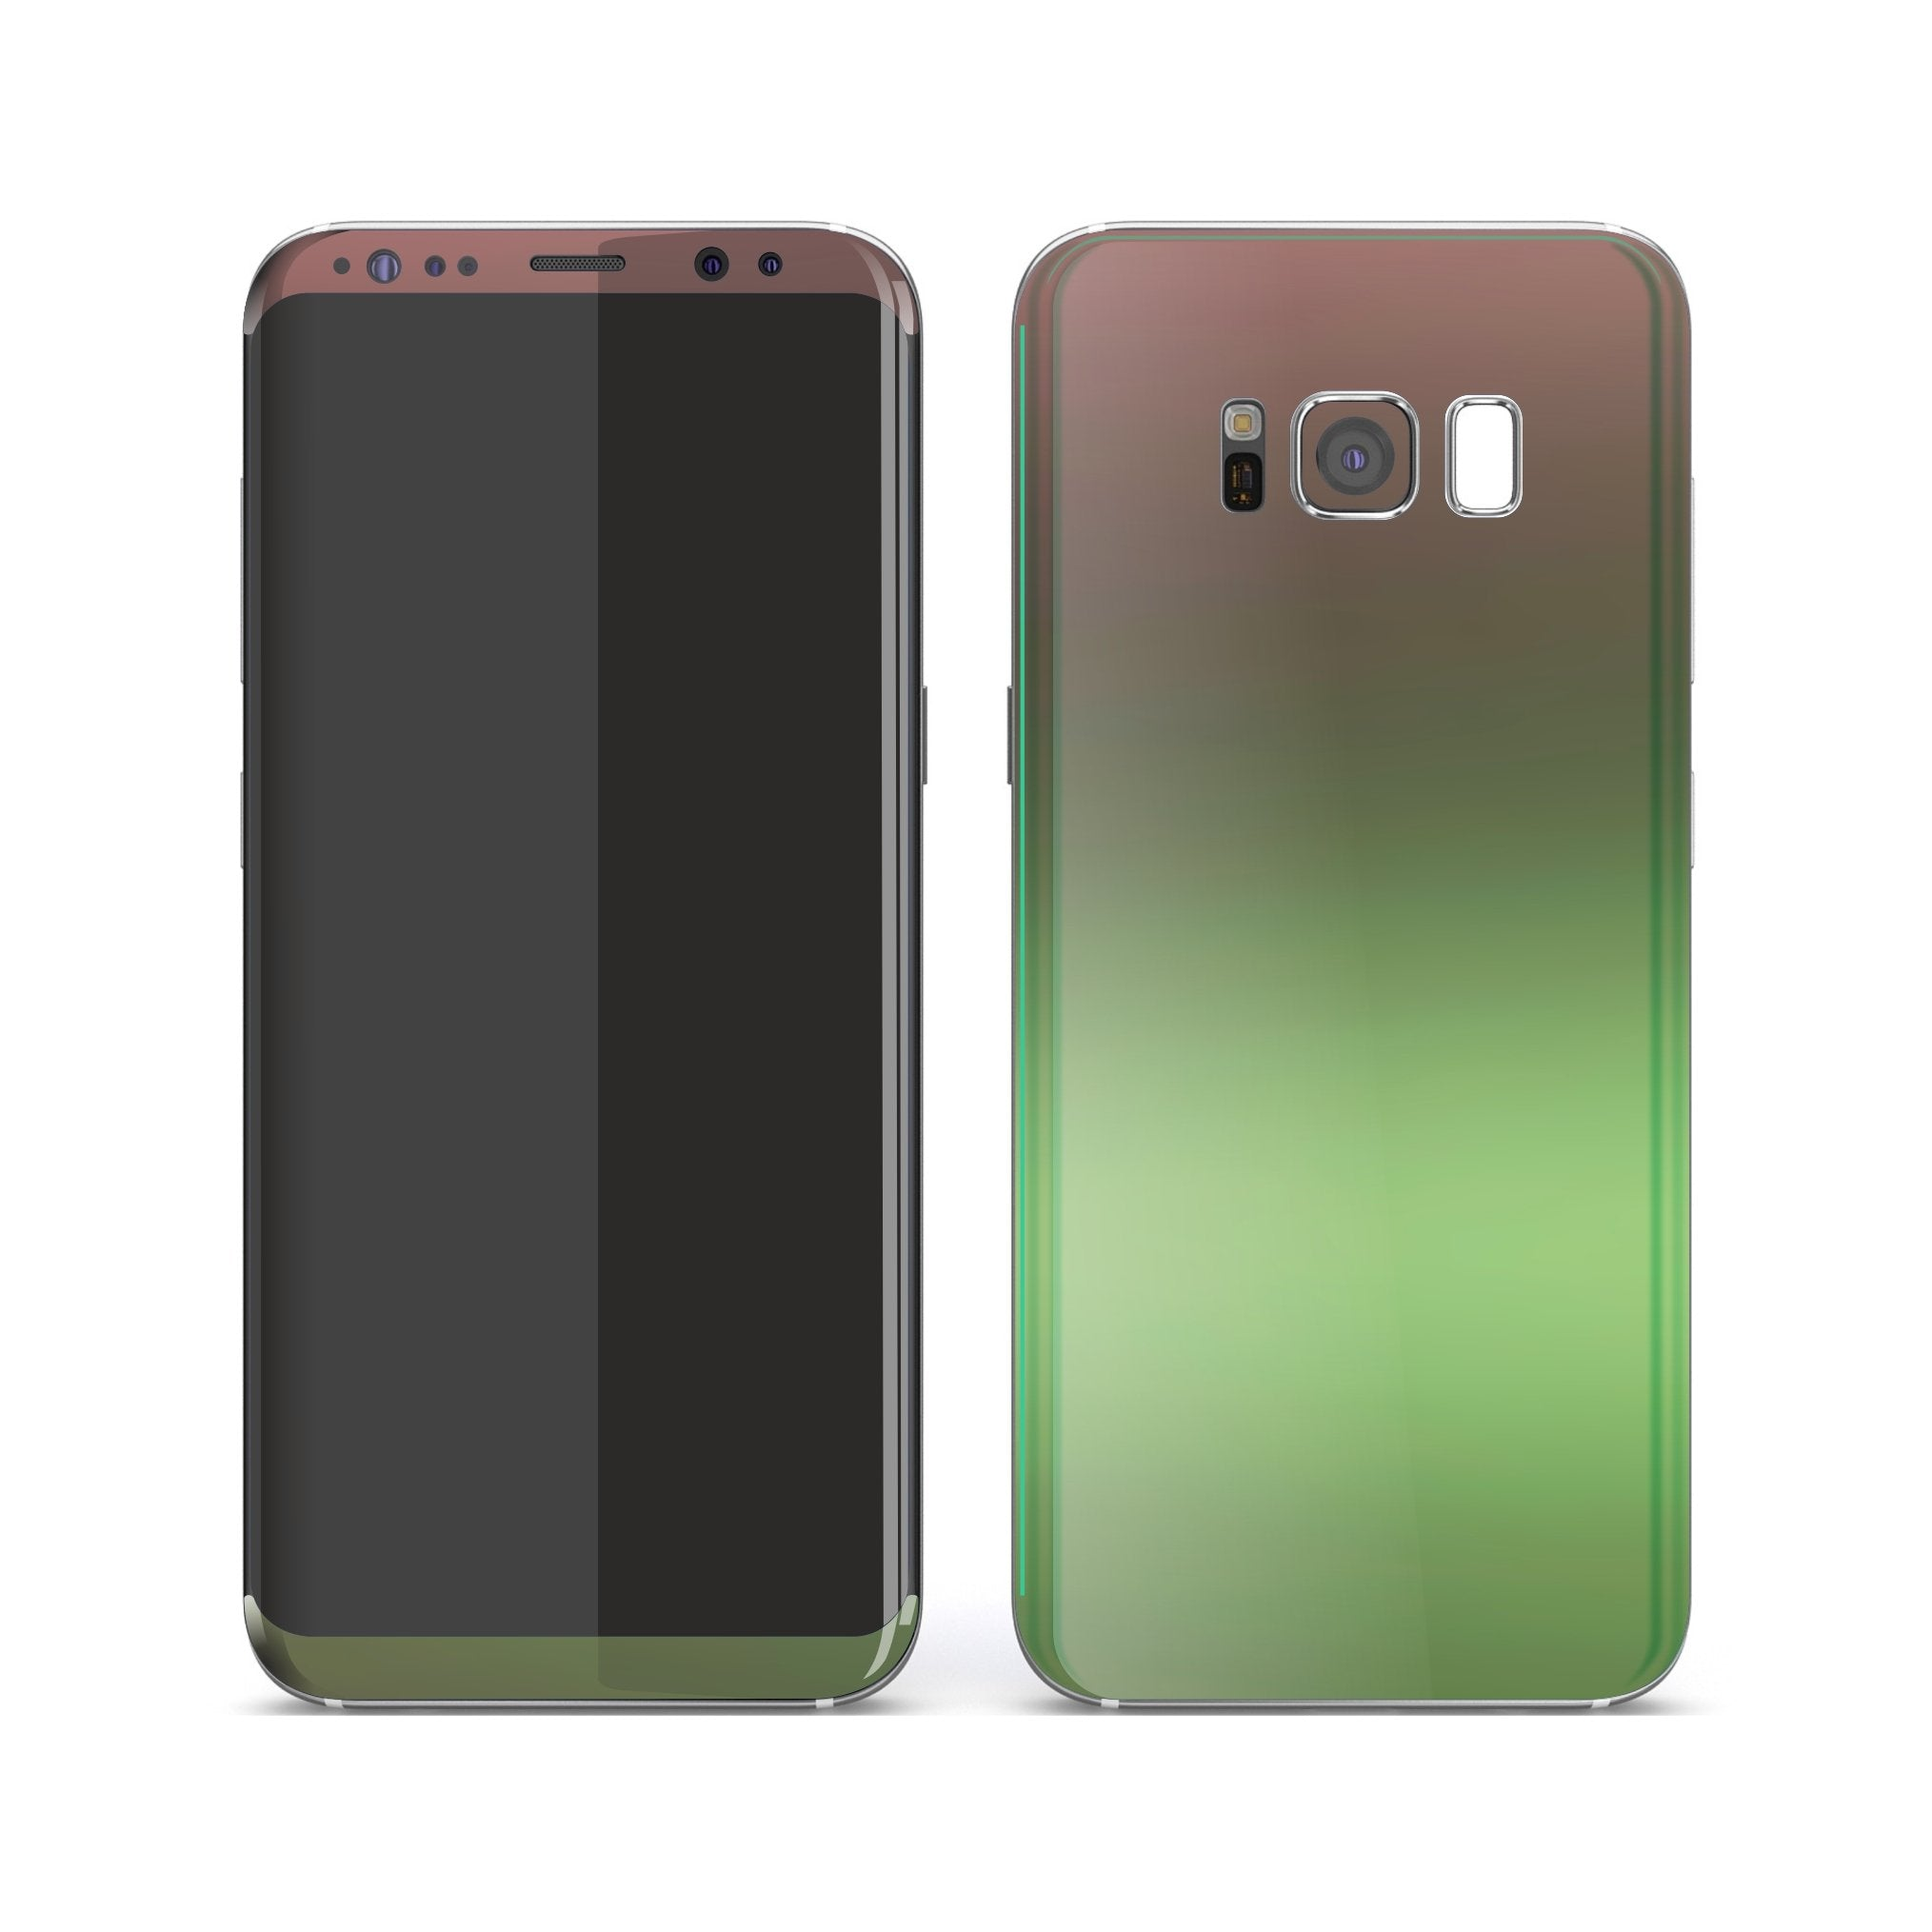 Samsung Galaxy S8 Chameleon Avocado Colour-Changing Skin, Decal, Wrap, Protector, Cover by EasySkinz | EasySkinz.com